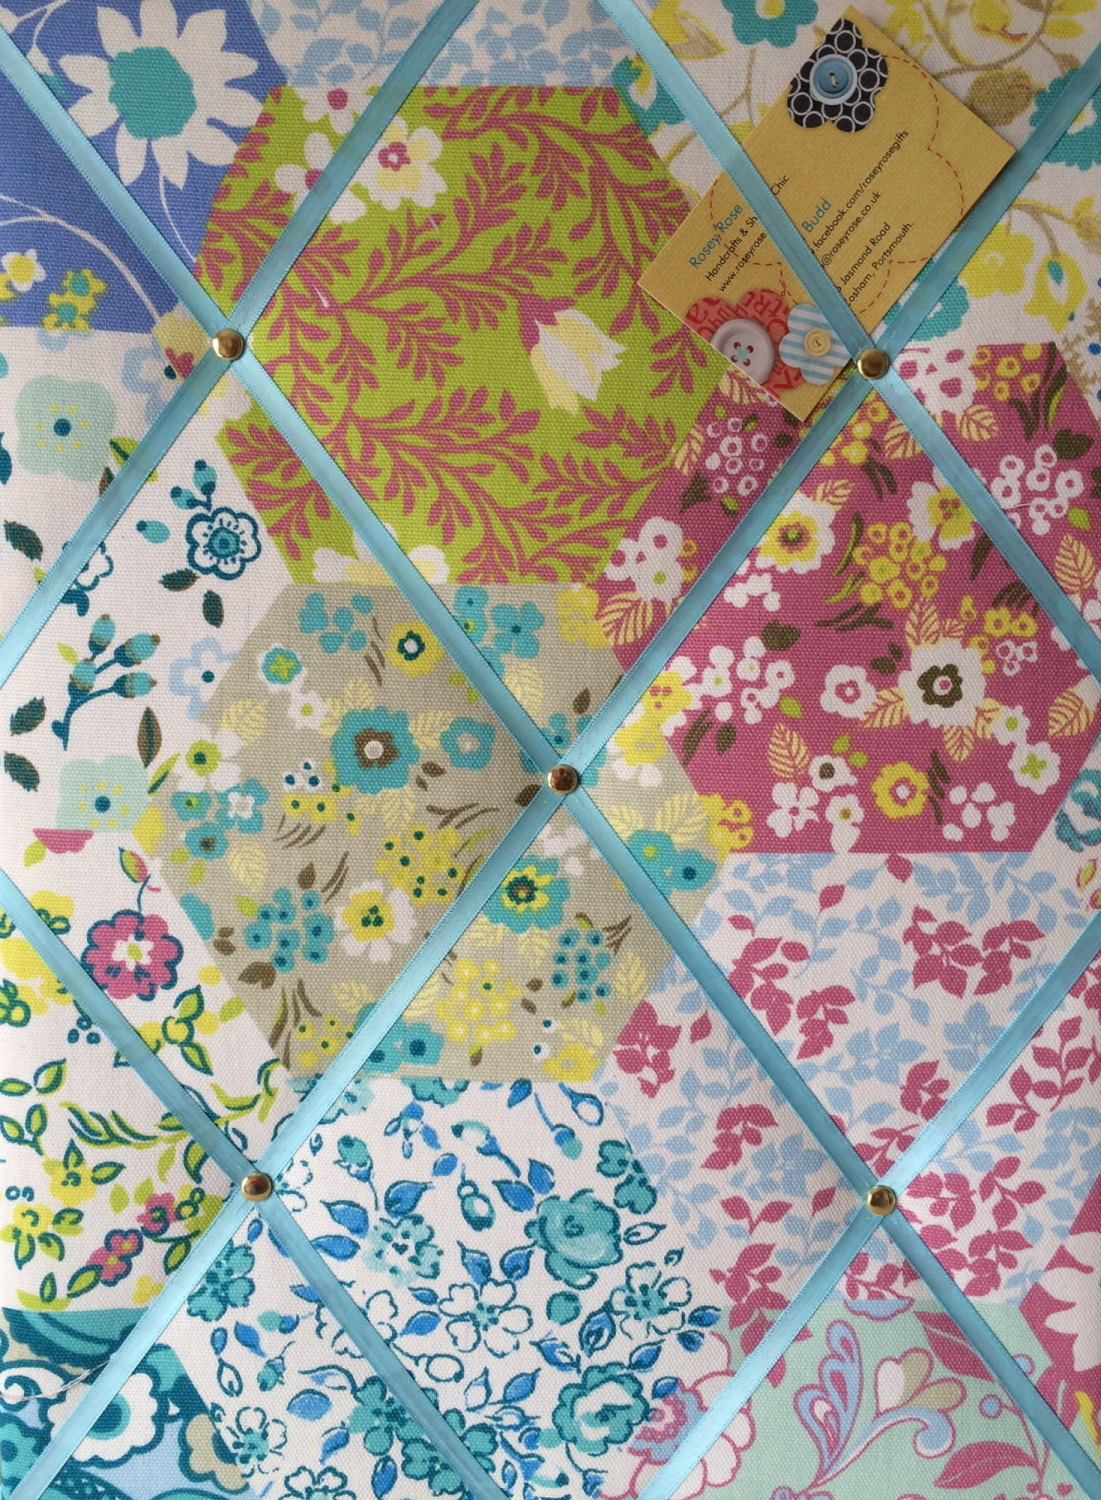 Medium 40x30cm Prestigious Picnic Patchwork Rose Hand Crafted Fabric Notice